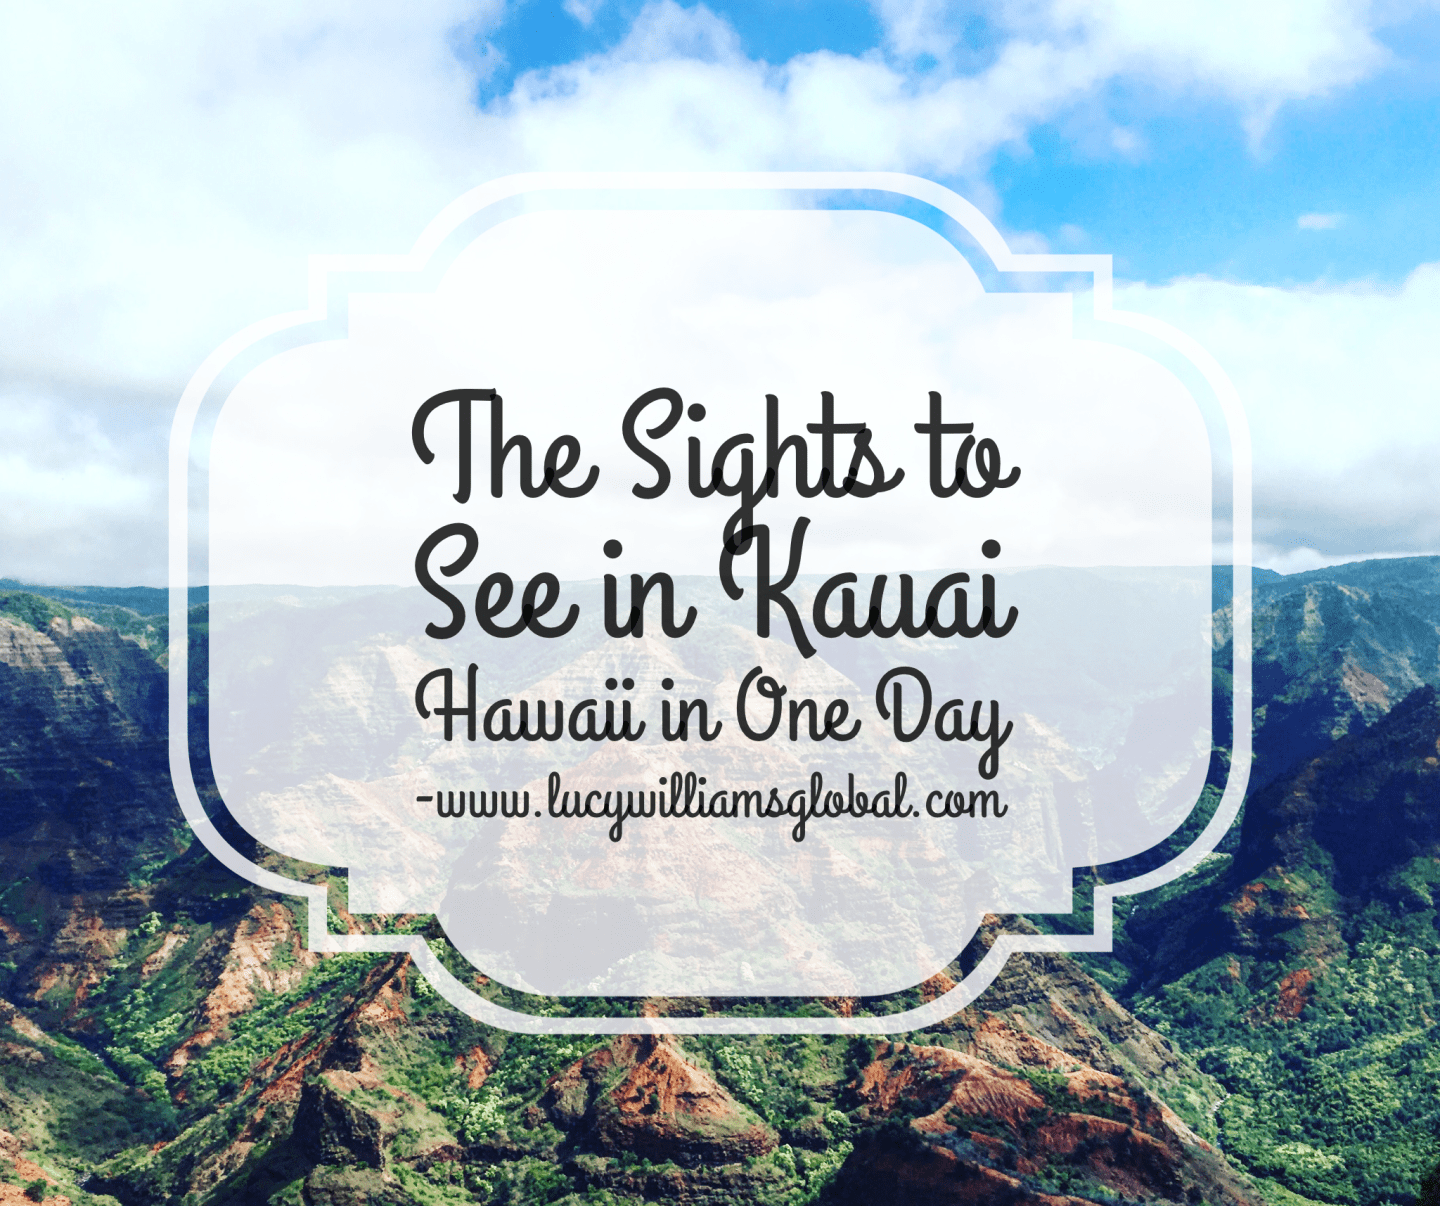 The Sights to See in Kauai Hawaii in One Day